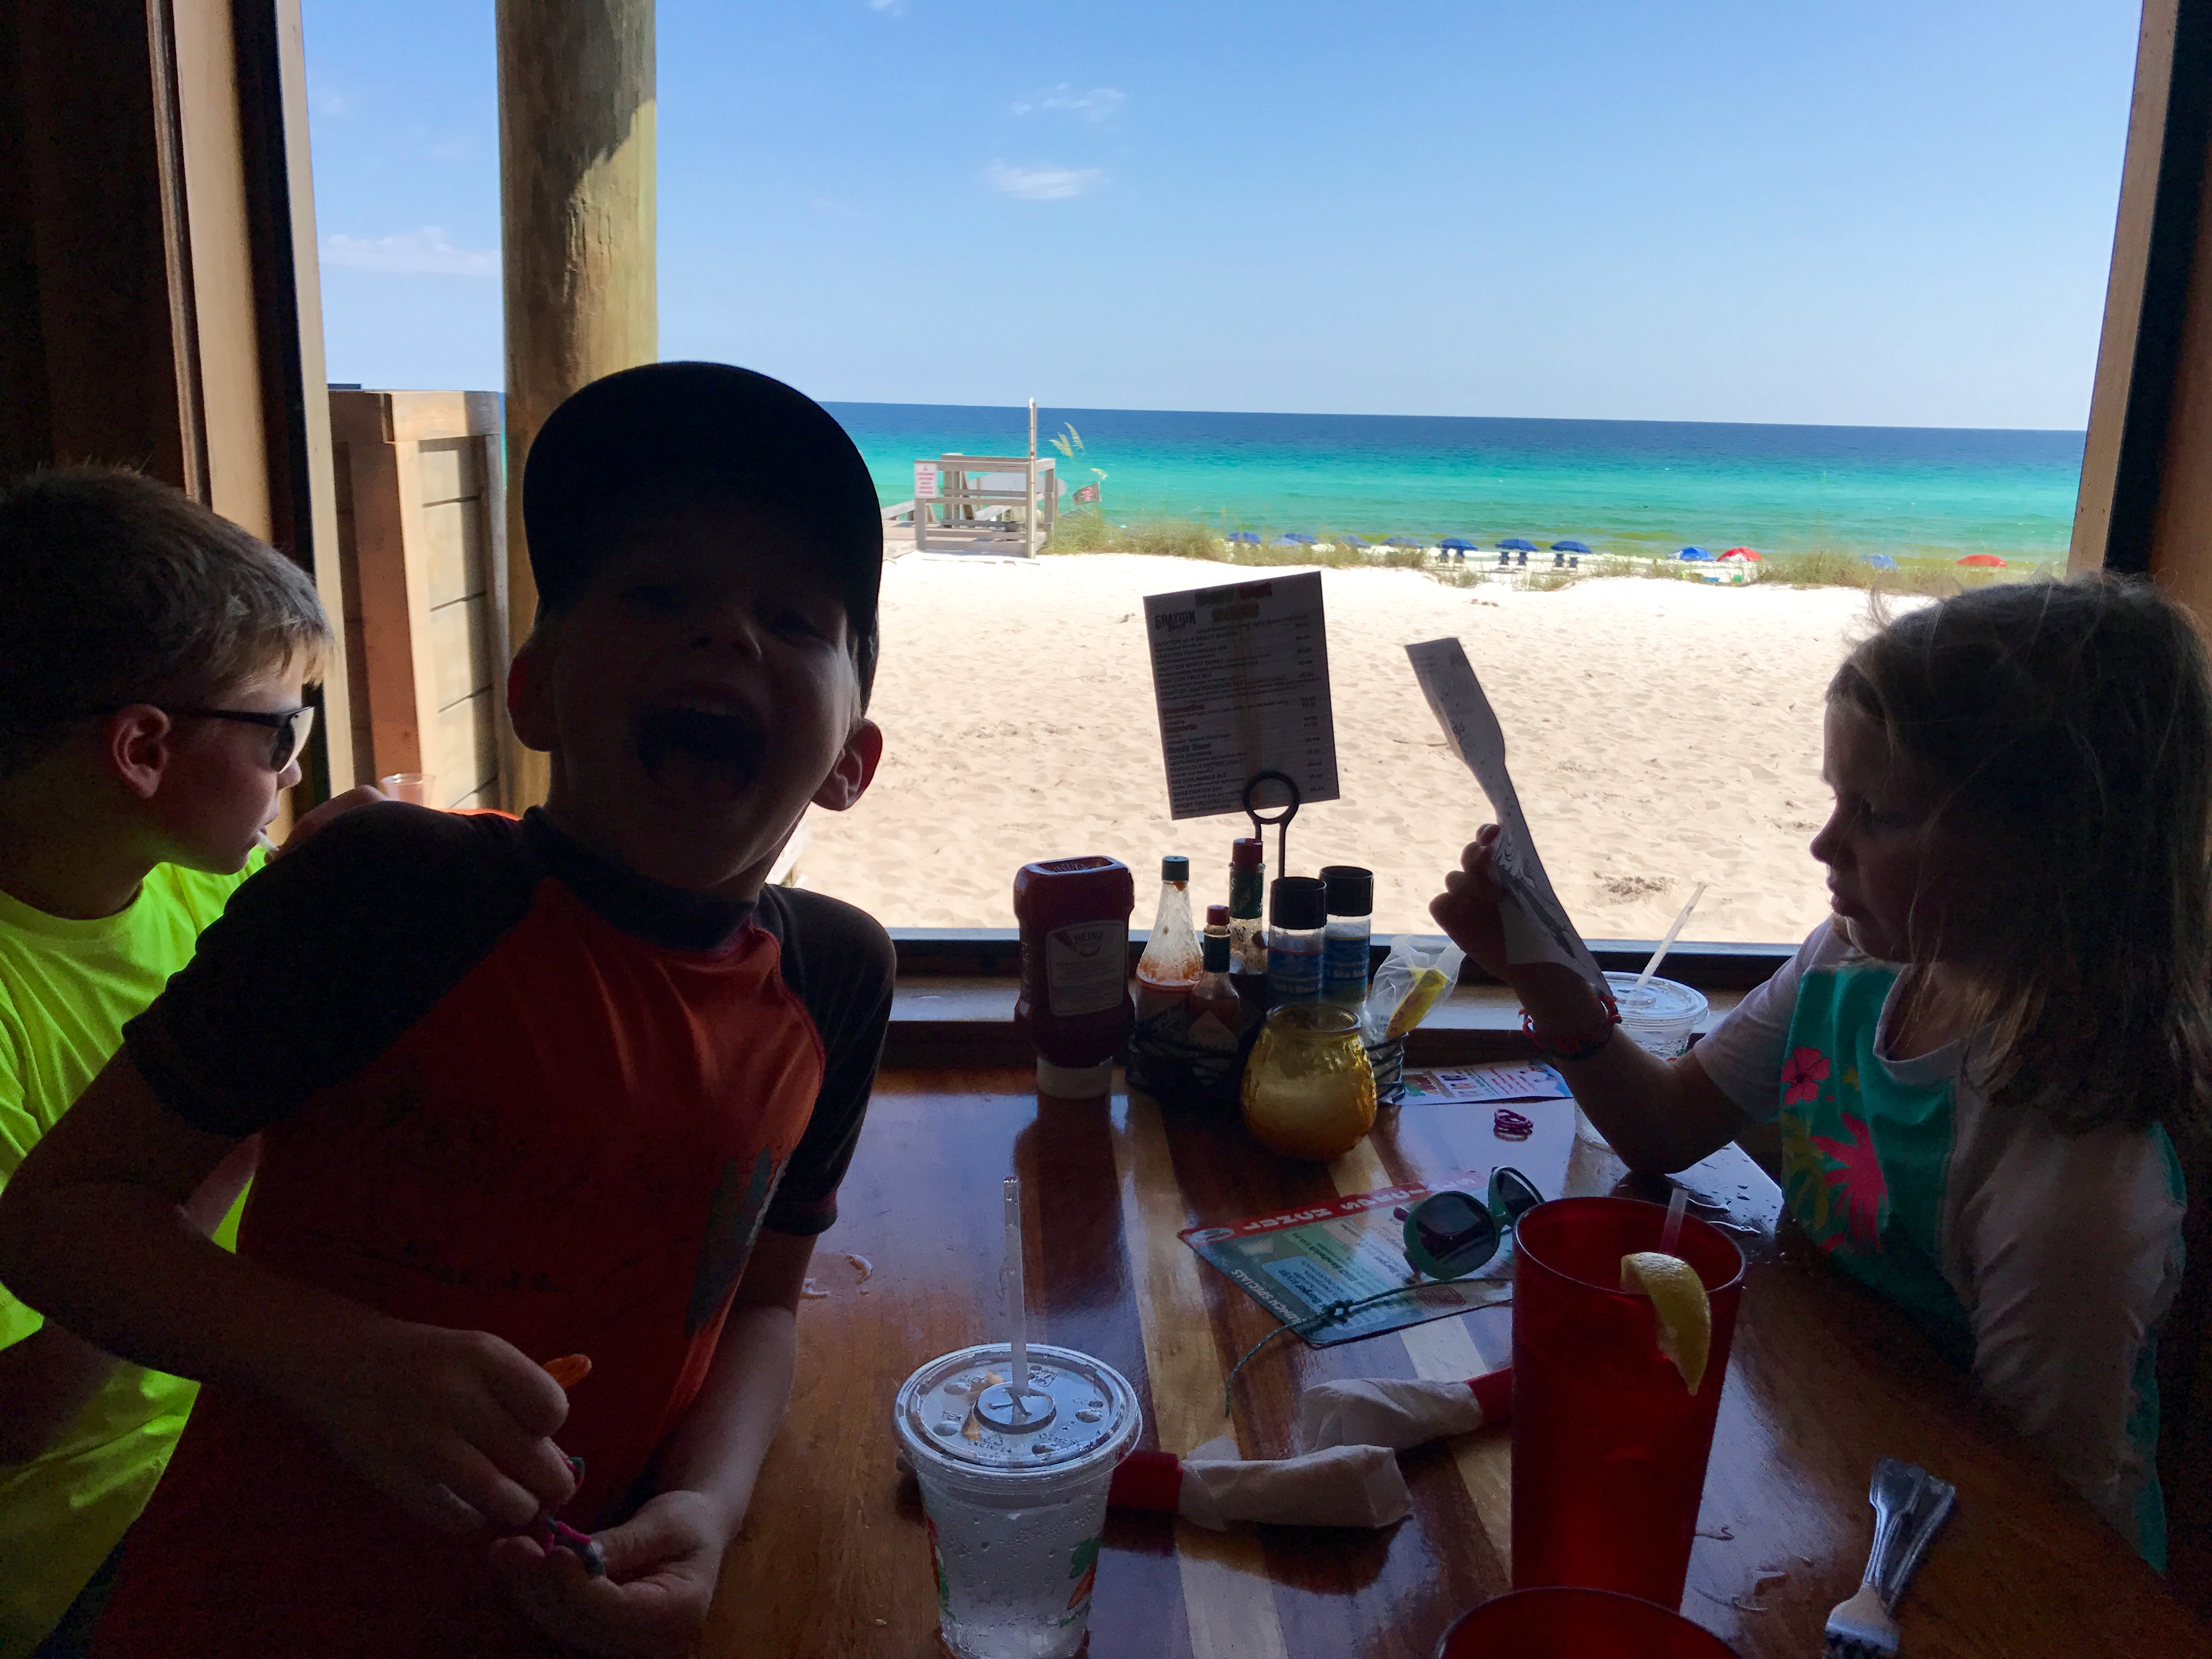 10 Things I'm Glad I Did On Our Family Vacation